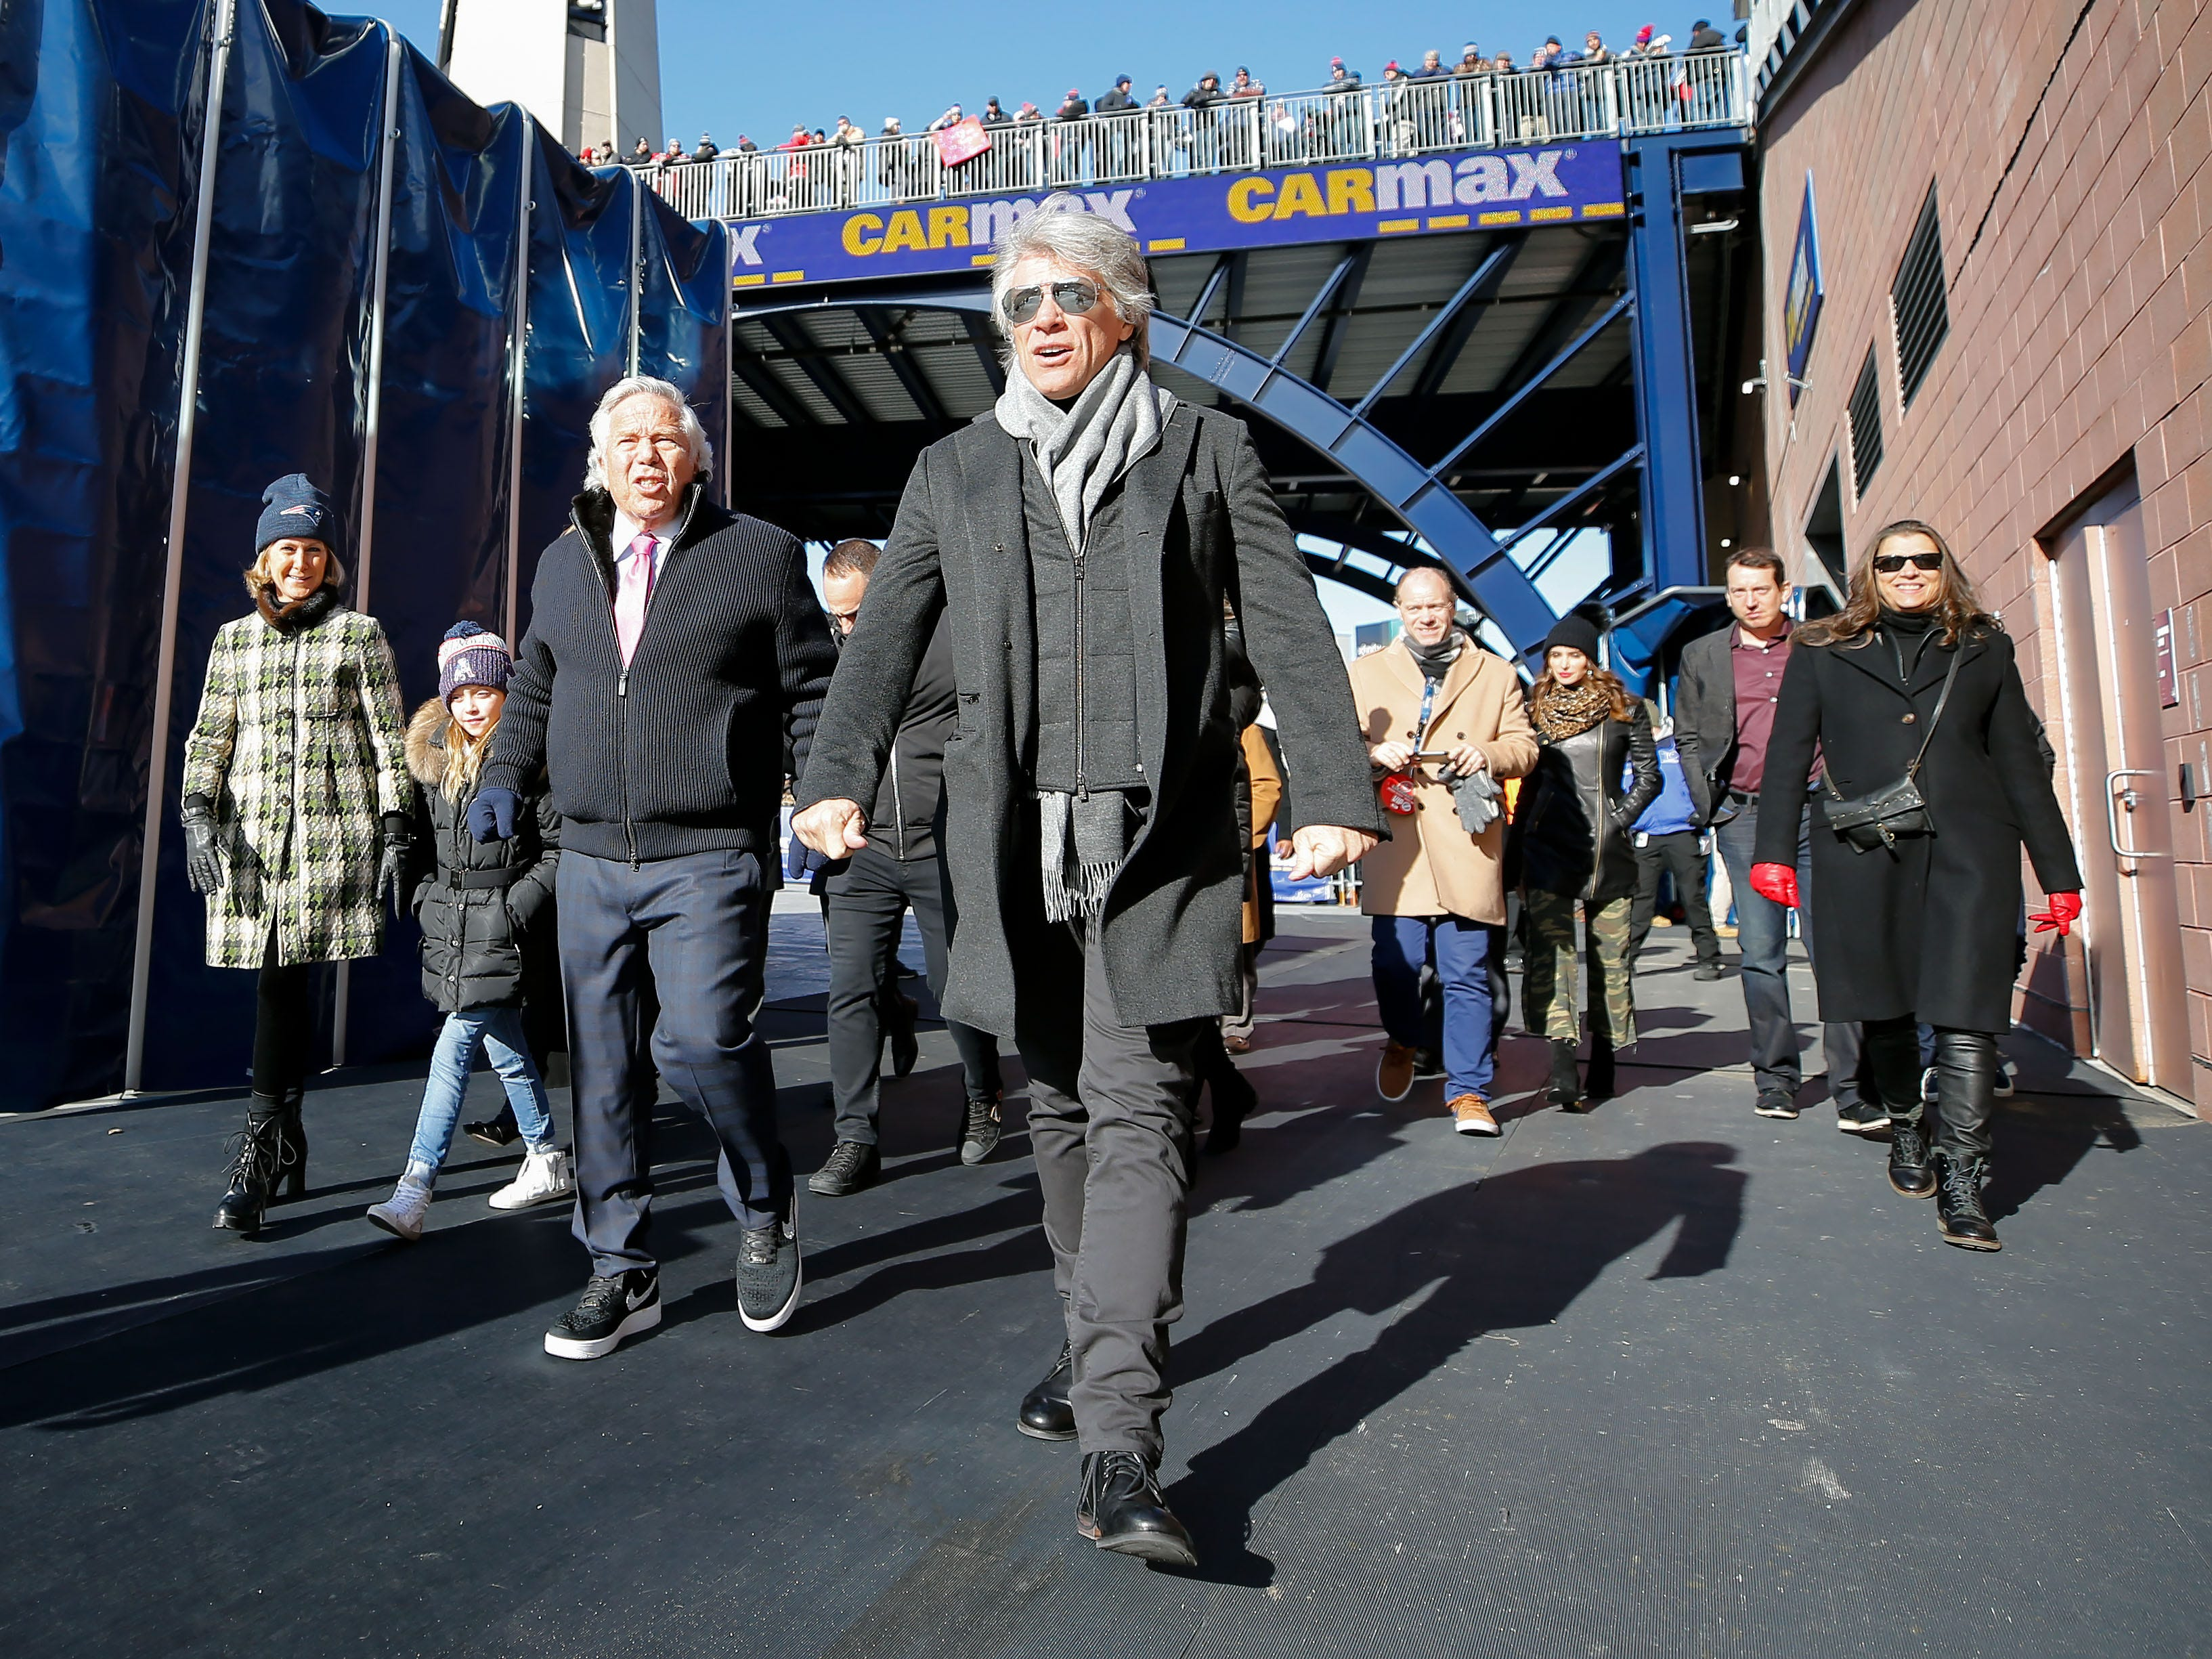 New England Patriots owner Robert Kraft and singer Bon Jovi walk onto the field during warmups before a game against the Los Angeles Chargers in an AFC Divisional playoff football game at Gillette Stadium.